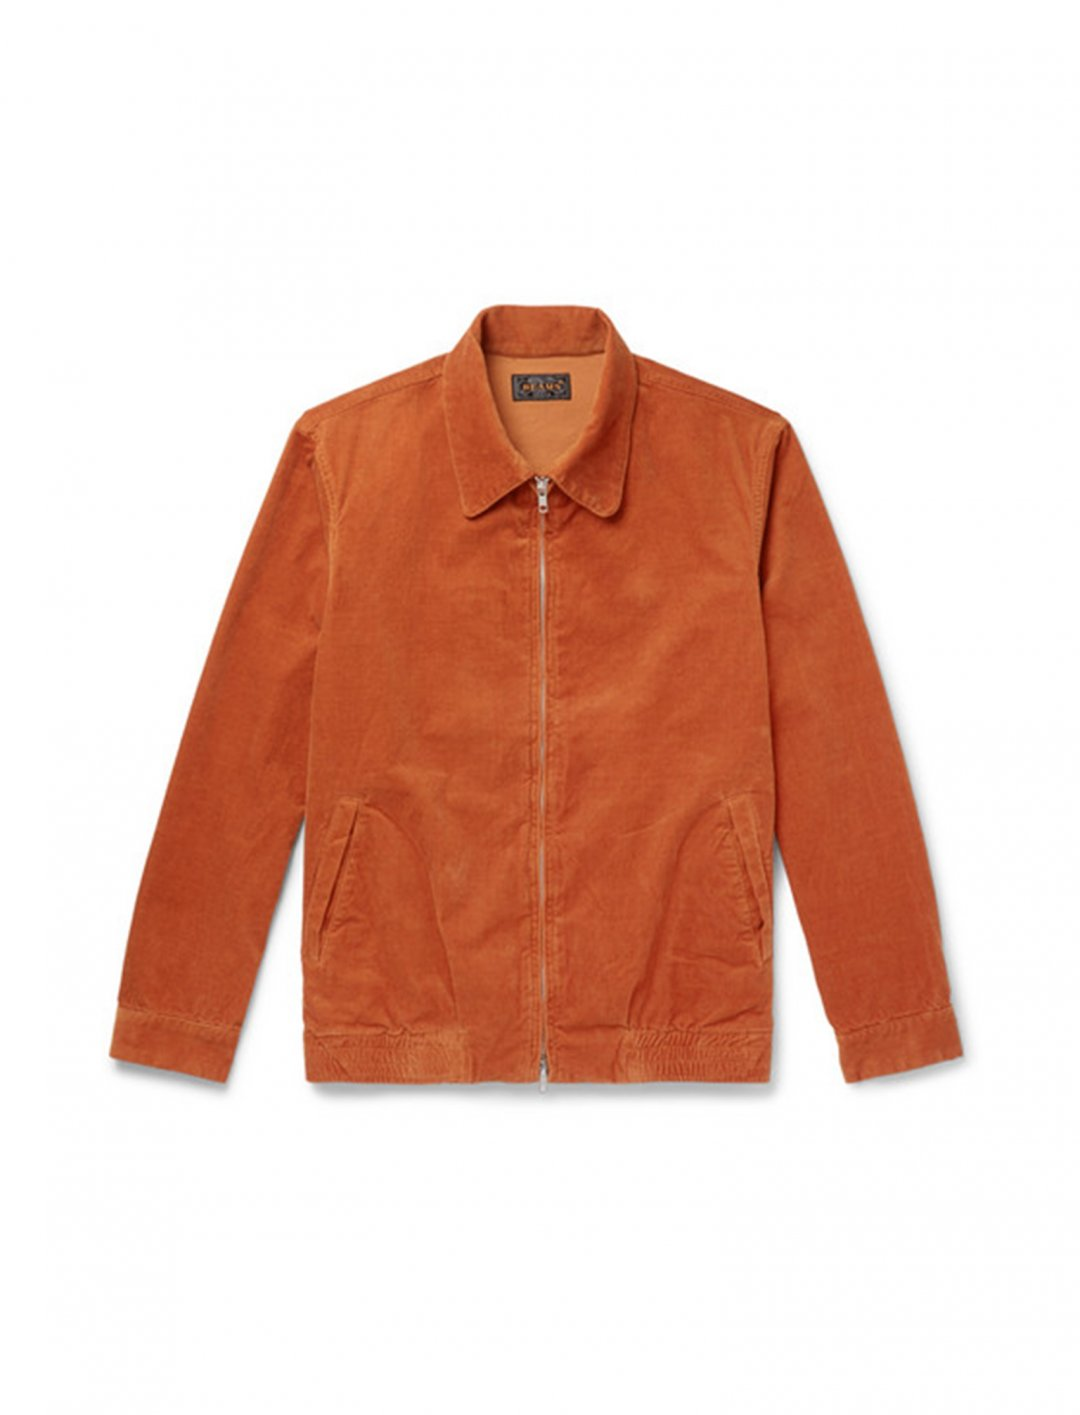 "Sam Smith's Corduroy Blouson Jacket {""id"":5,""product_section_id"":1,""name"":""Clothing"",""order"":5}"